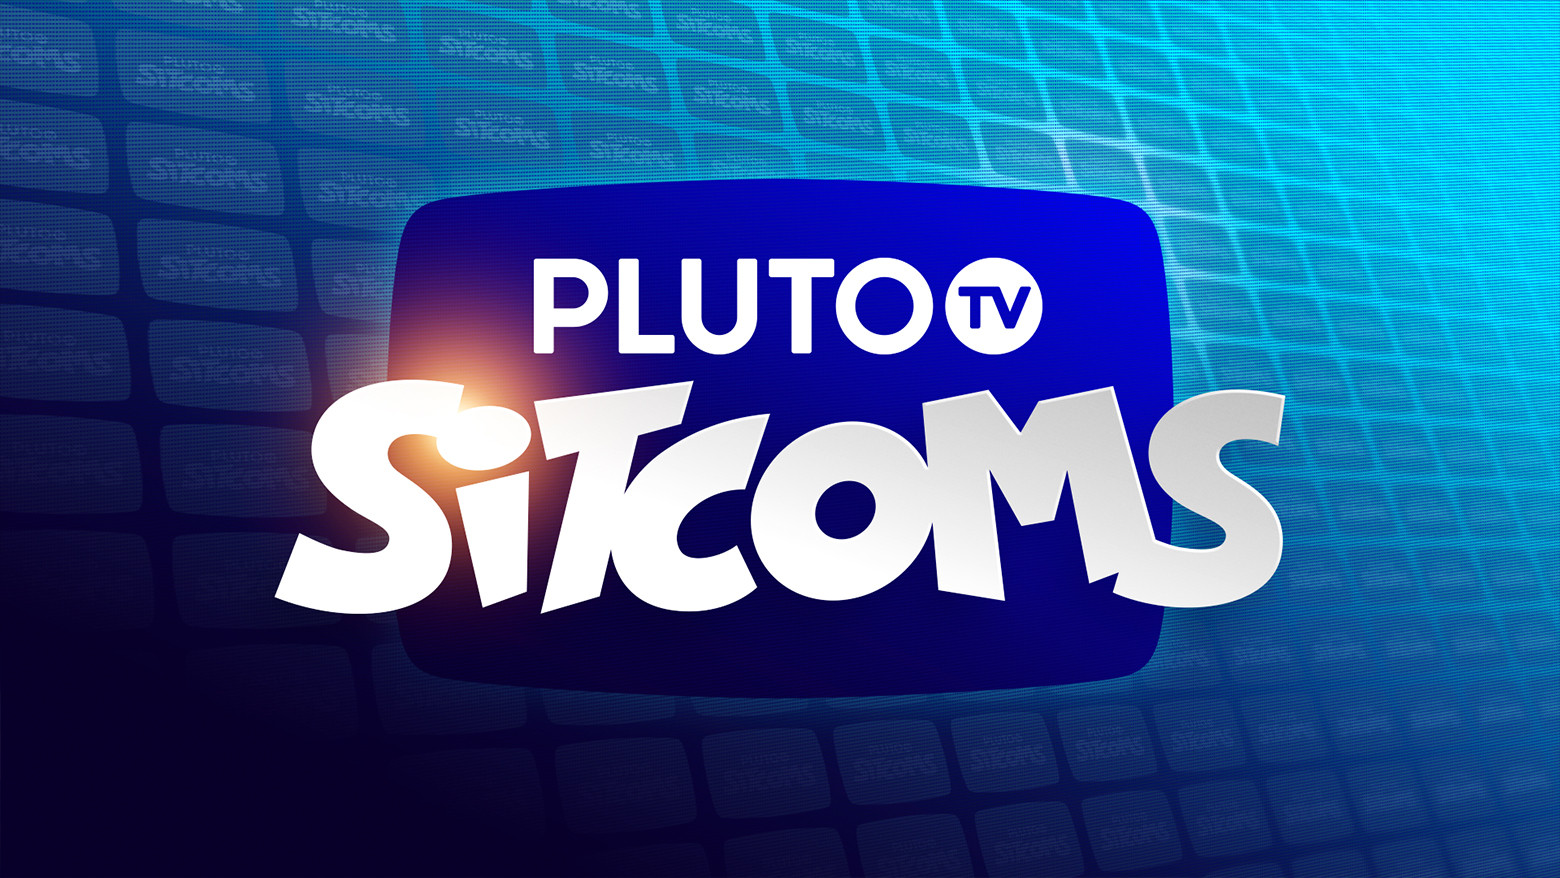 Pluto TV Sitcoms featuredImage.jpg